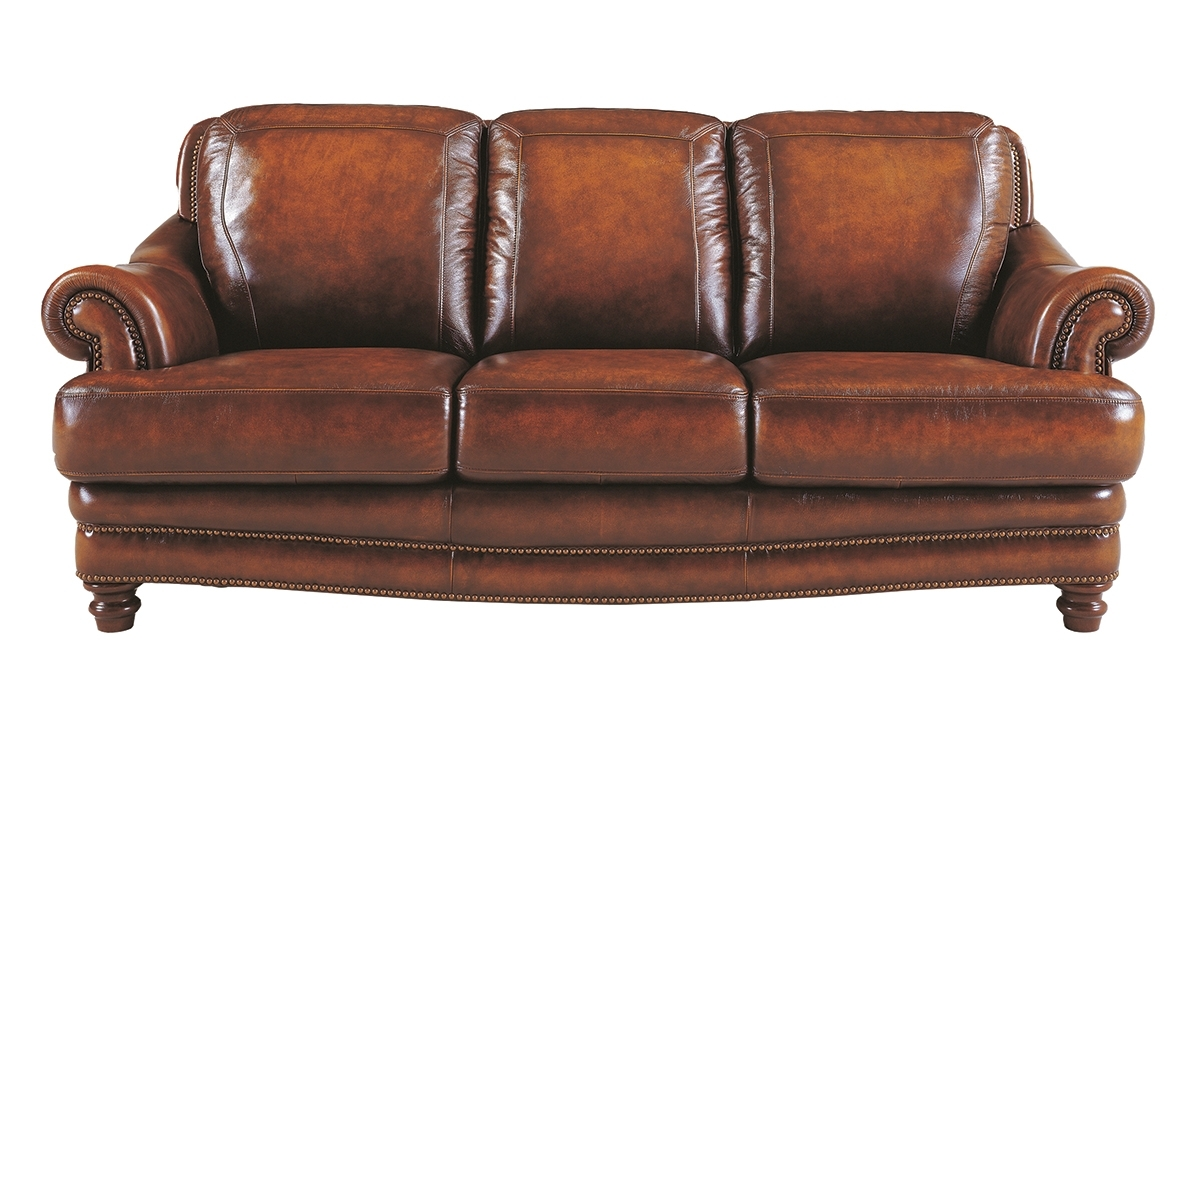 Closeout Sofas Throughout Latest The Dump Furniture – Tannery Closeout: Top Grain Leather Sofa (View 4 of 20)